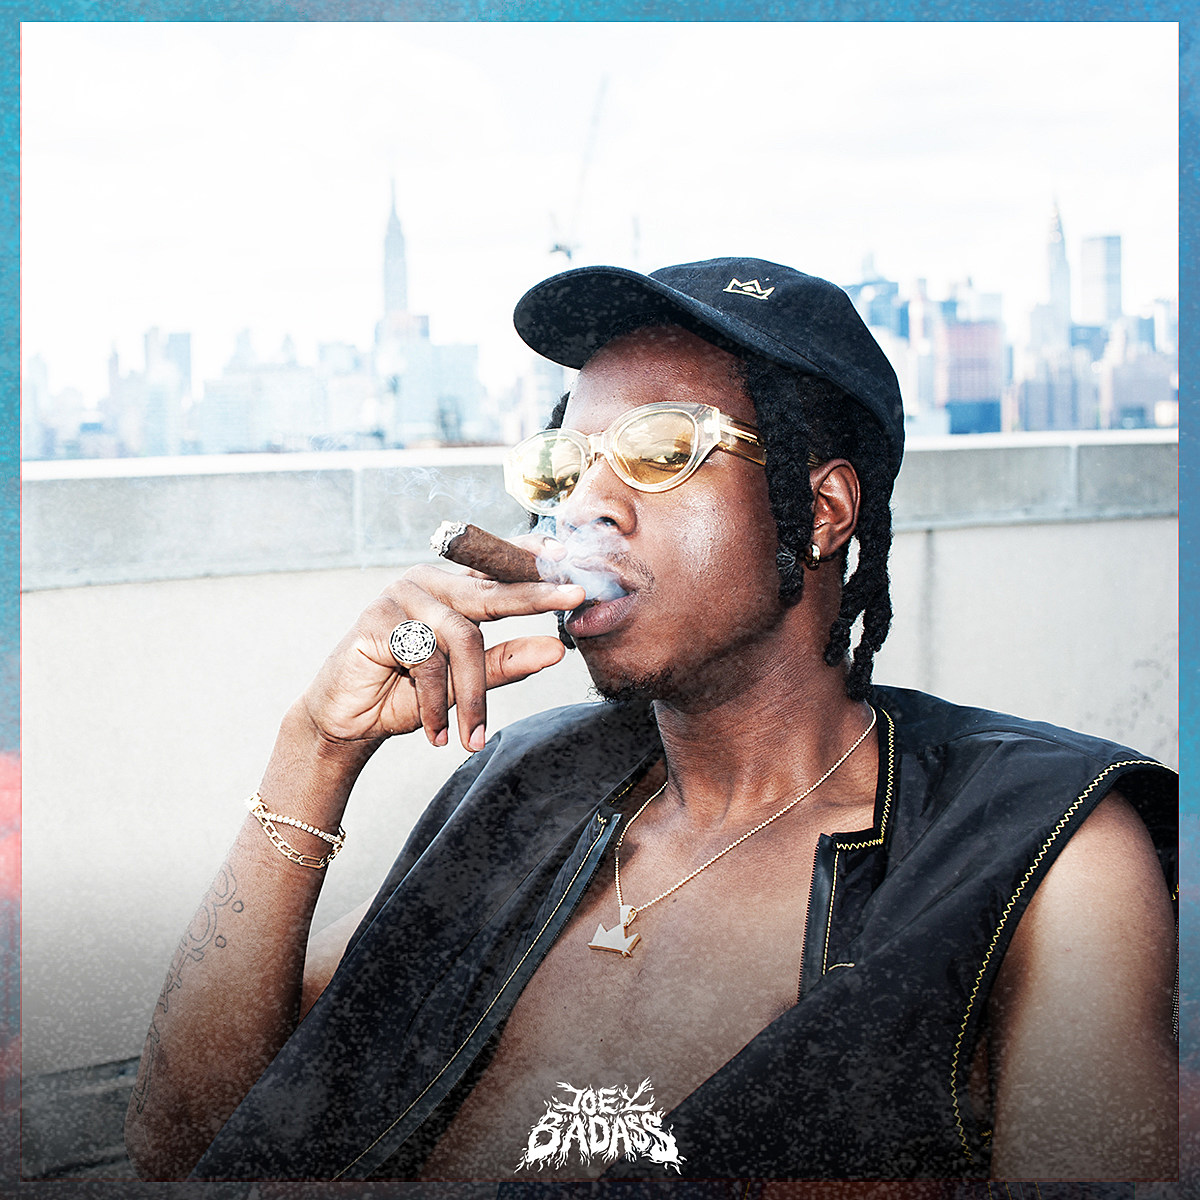 Joey Badass Drops Three New Songs Produced by Statik Selektah